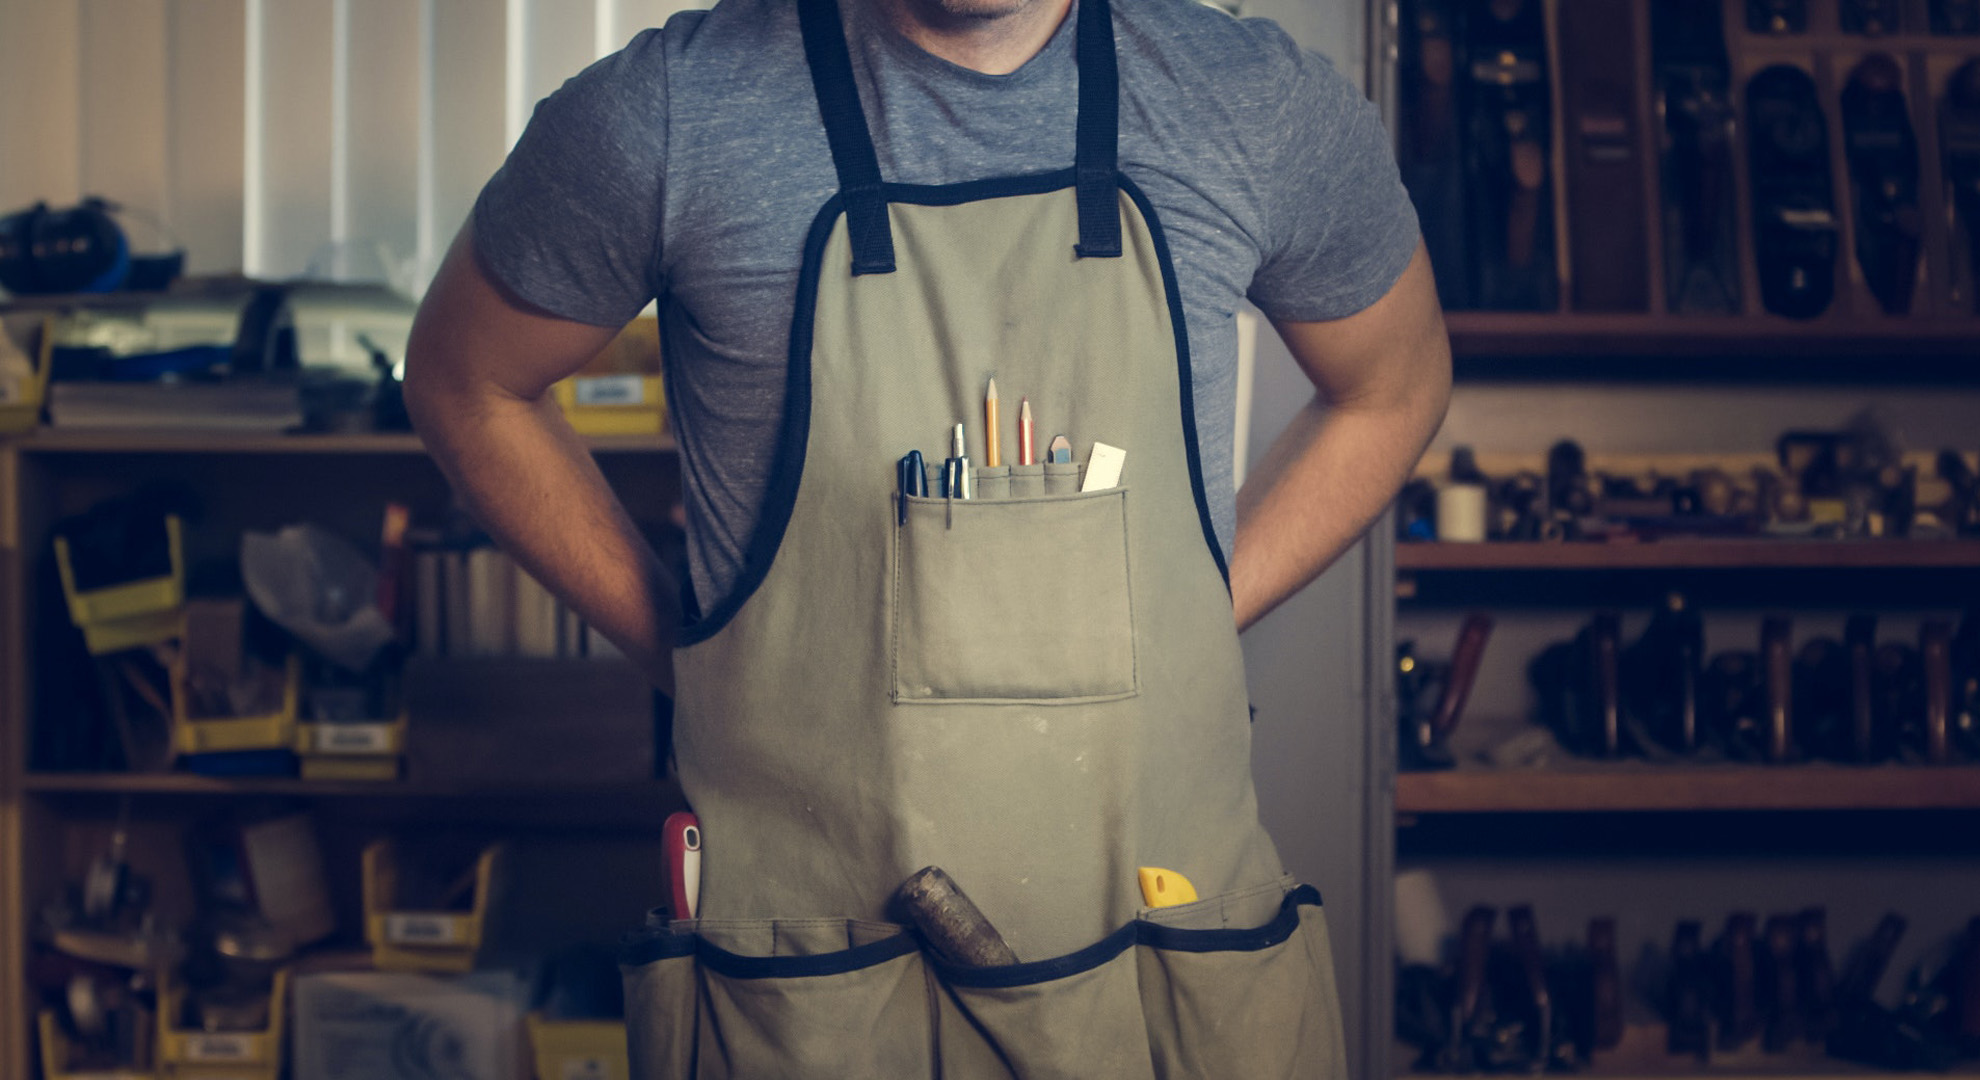 Handyman with apron filled with tools